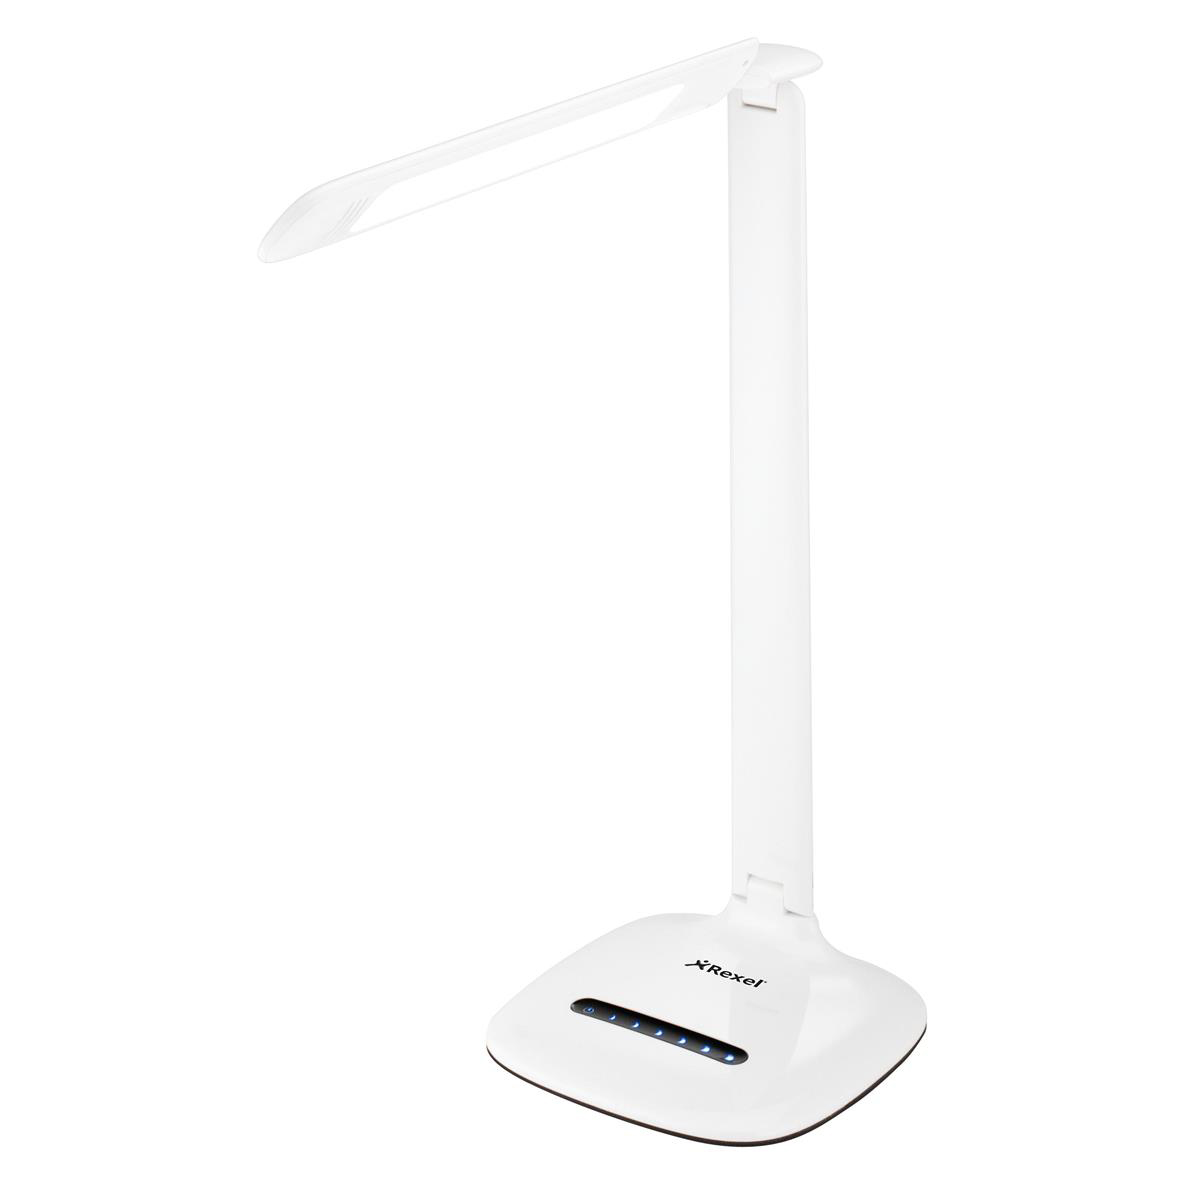 Image for Rexel ActiVita Daylight Strip Desk Lamp 6 Brightness Settings Fully Adjustable Head White Ref 4402013